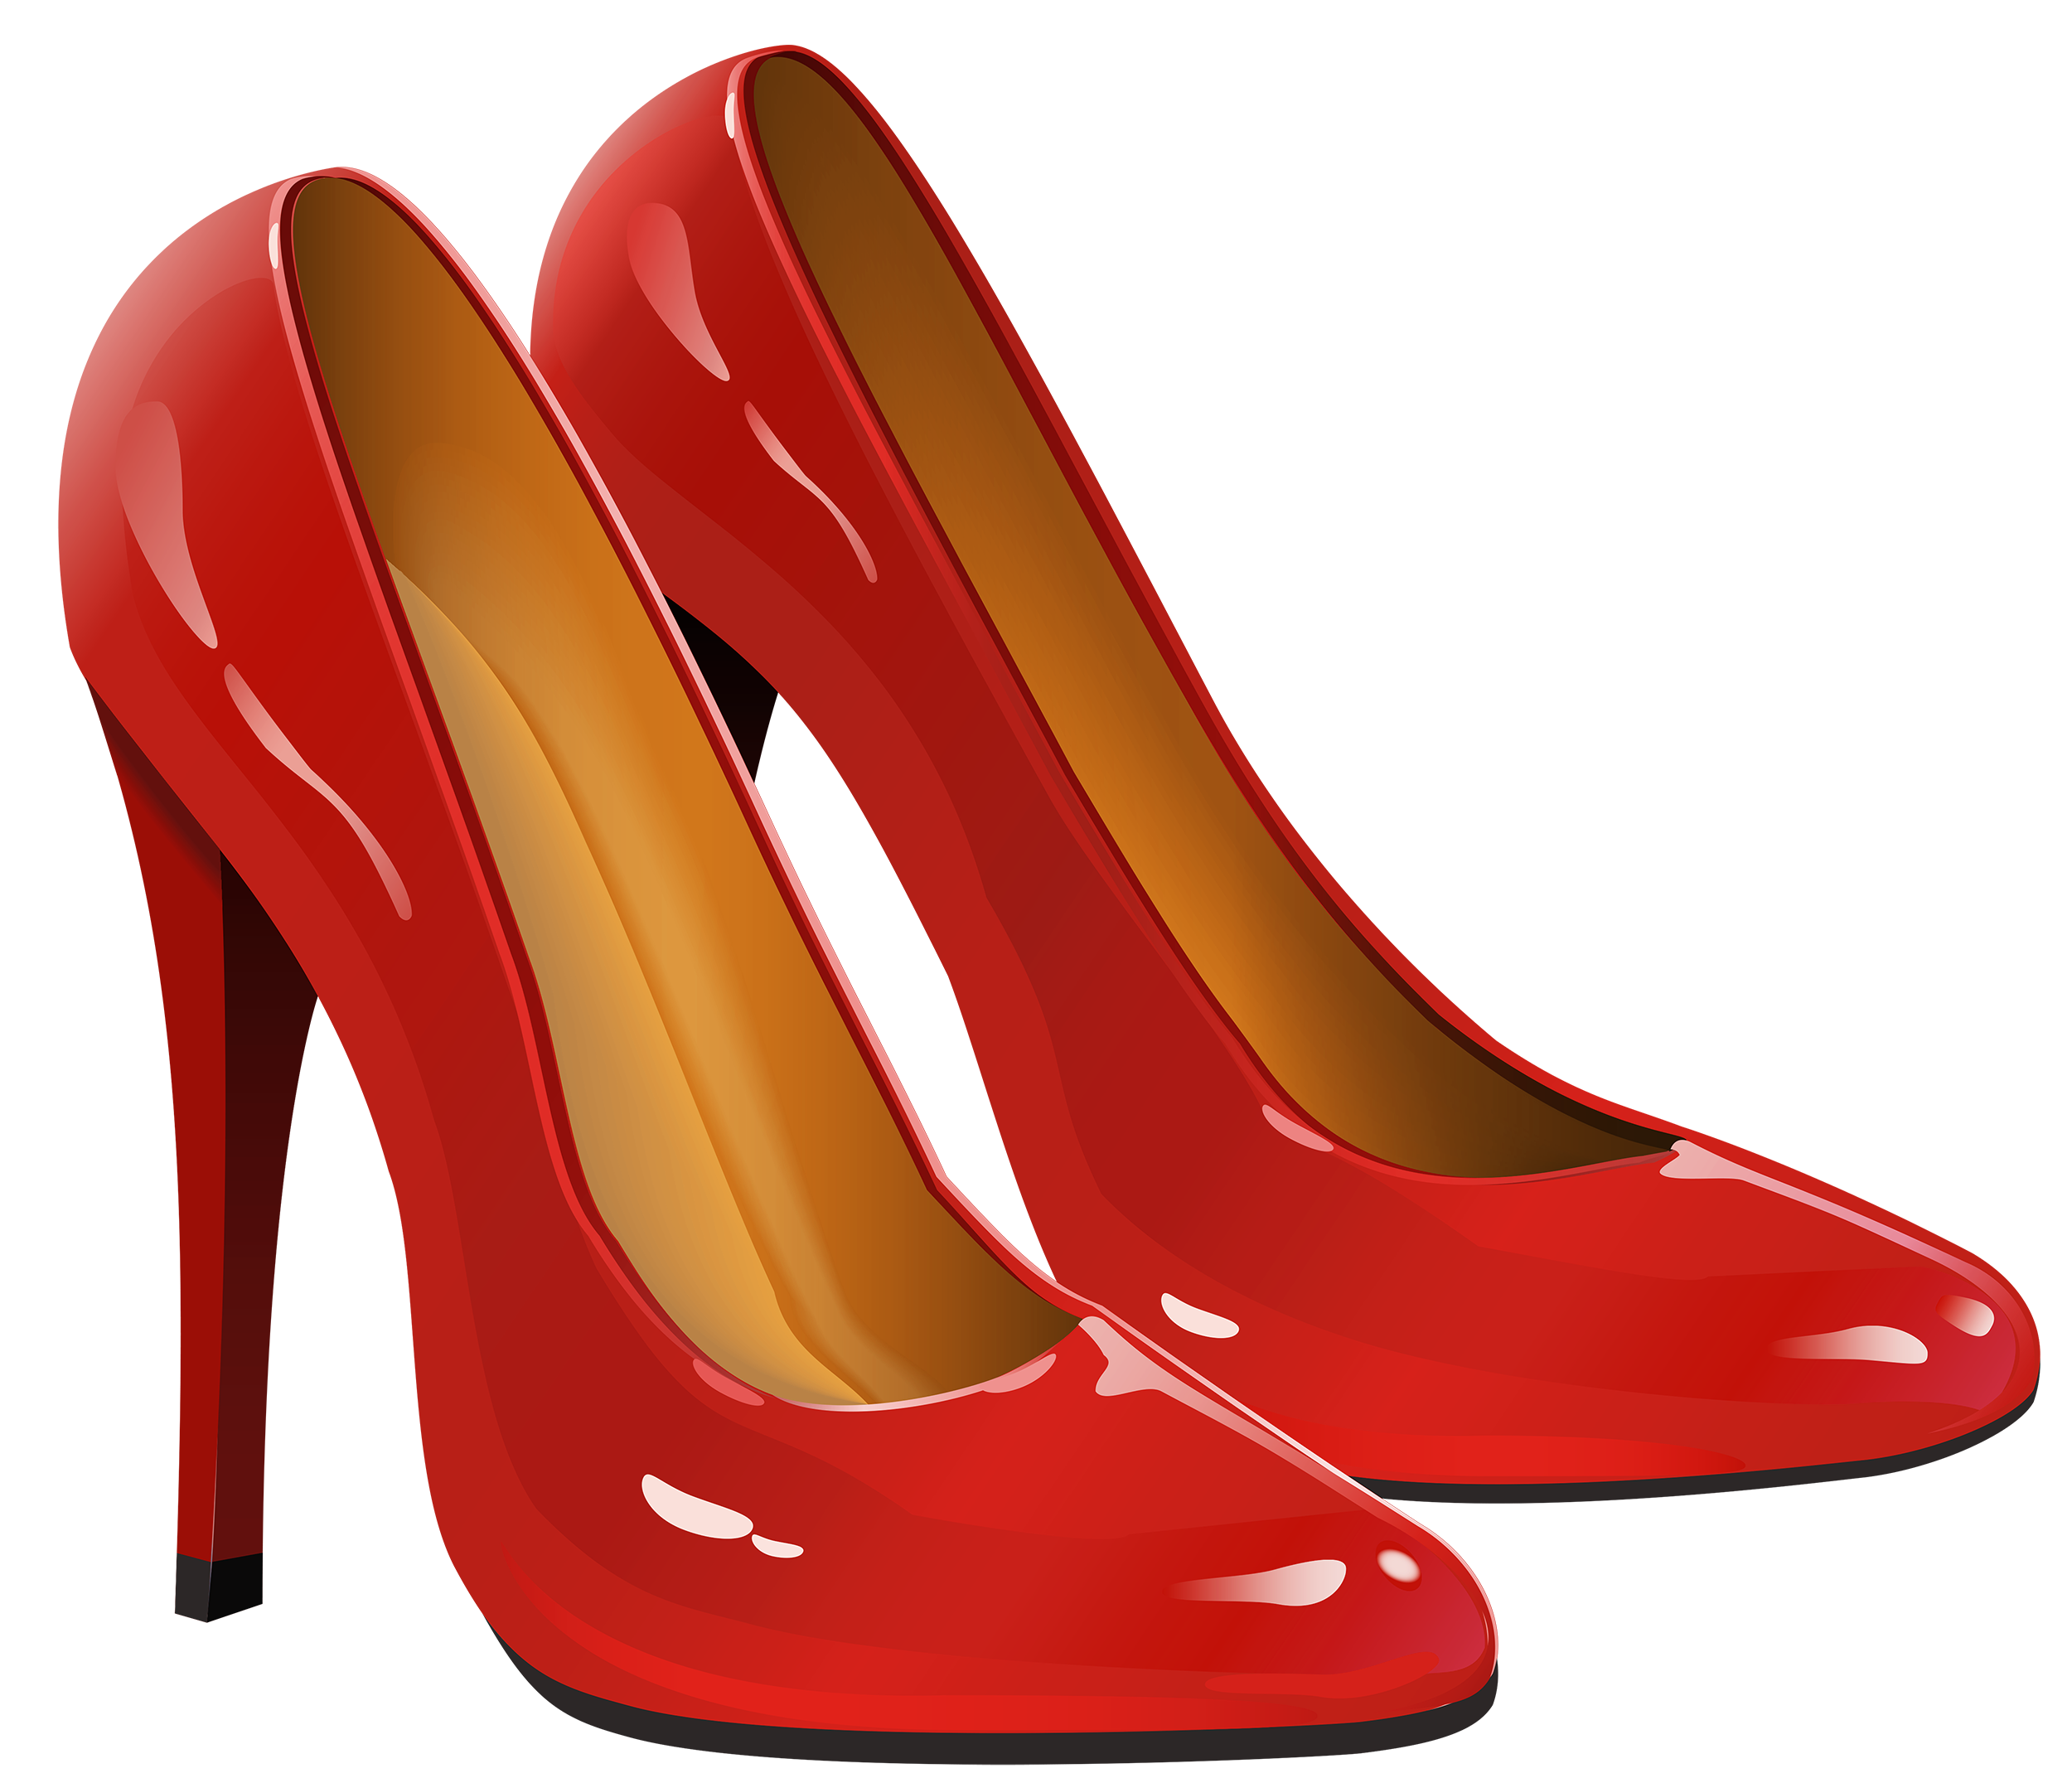 6f9803630a6d0f high-heel-png-hd-red-heel-clipart-high-heel-shoes-png-hd-2500.png